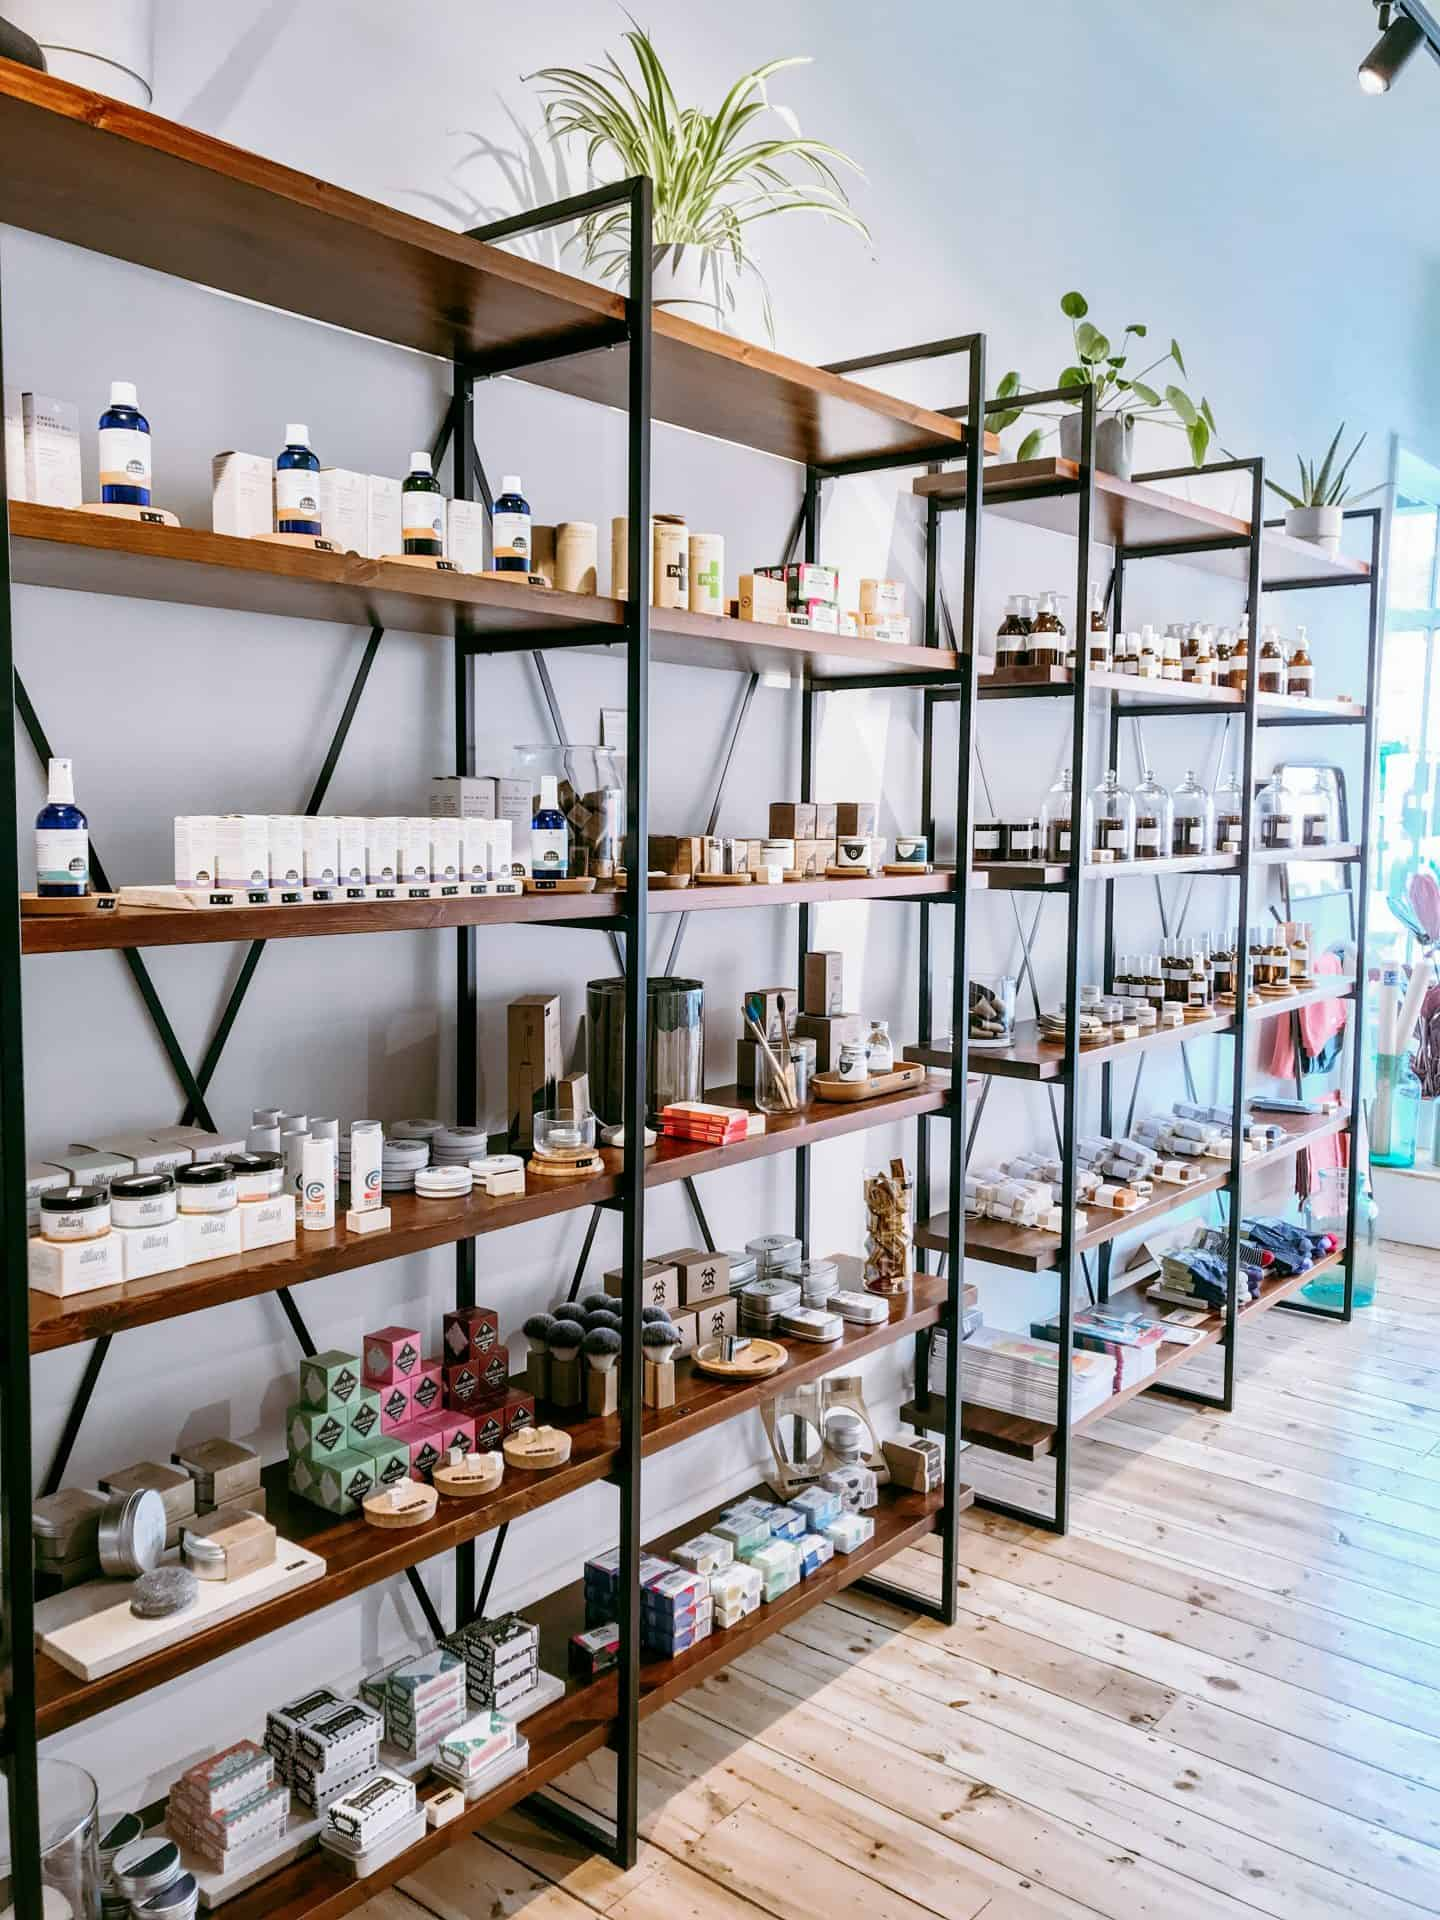 Barnes + Binns General Store shelves full of eco-friendly products